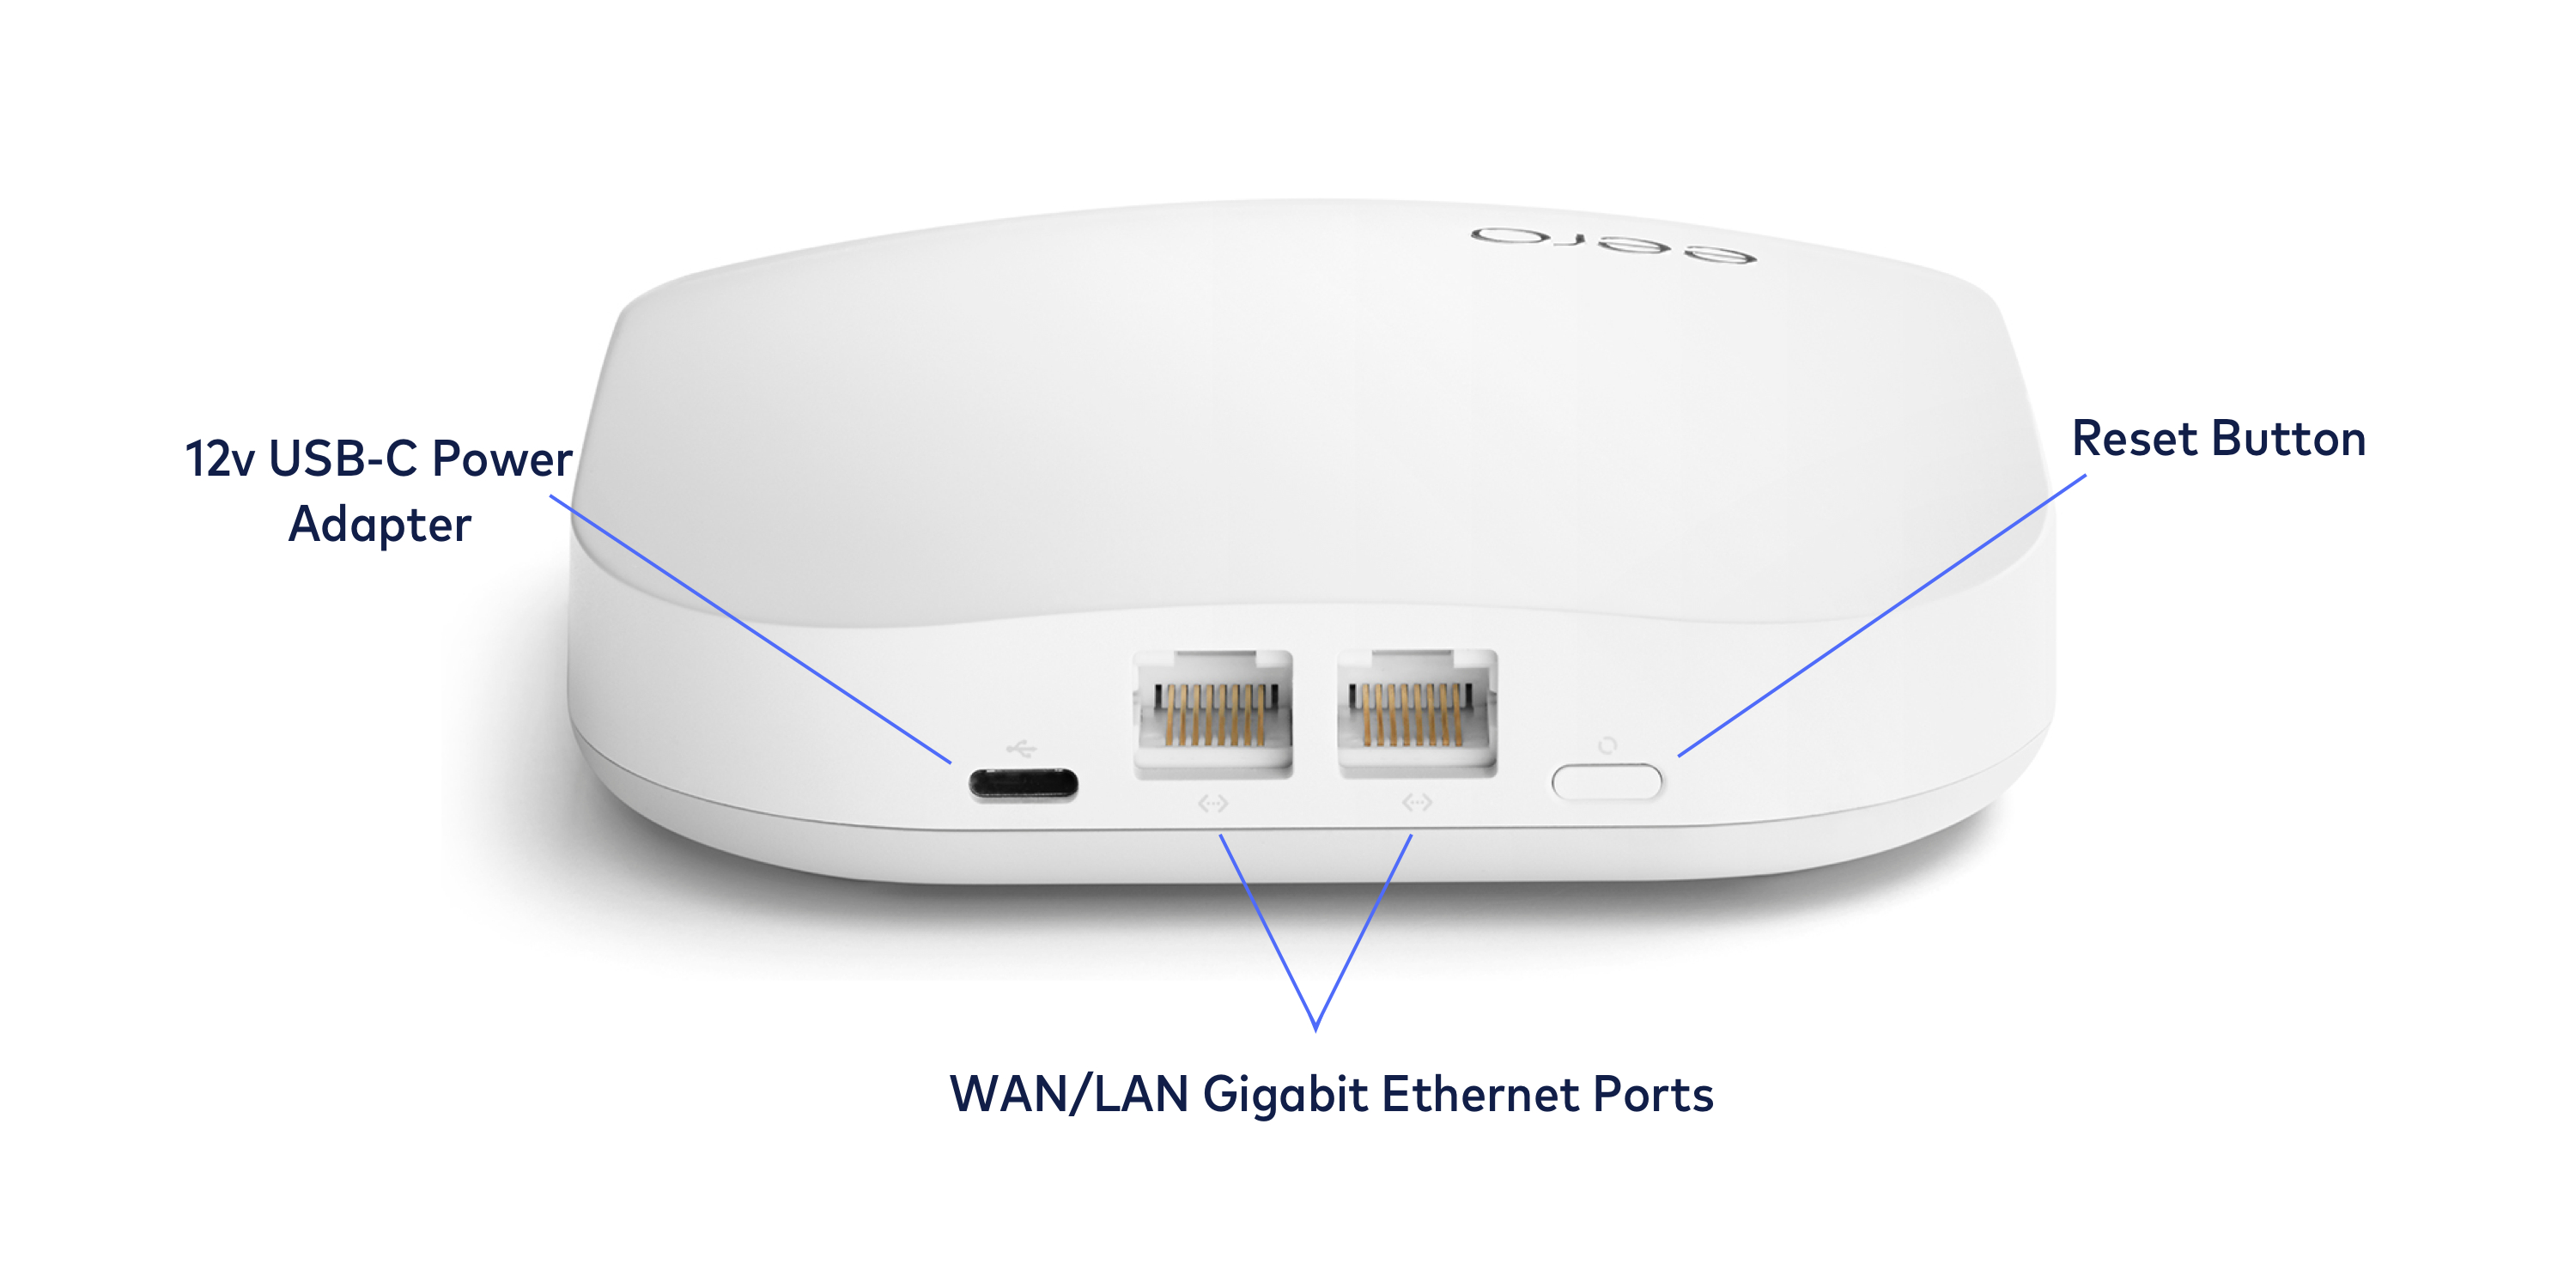 Physical Tour Of An Eero: What Are All The Ports For? – Eero Help Center - Wiring Diagram For Rj45 To Usb C